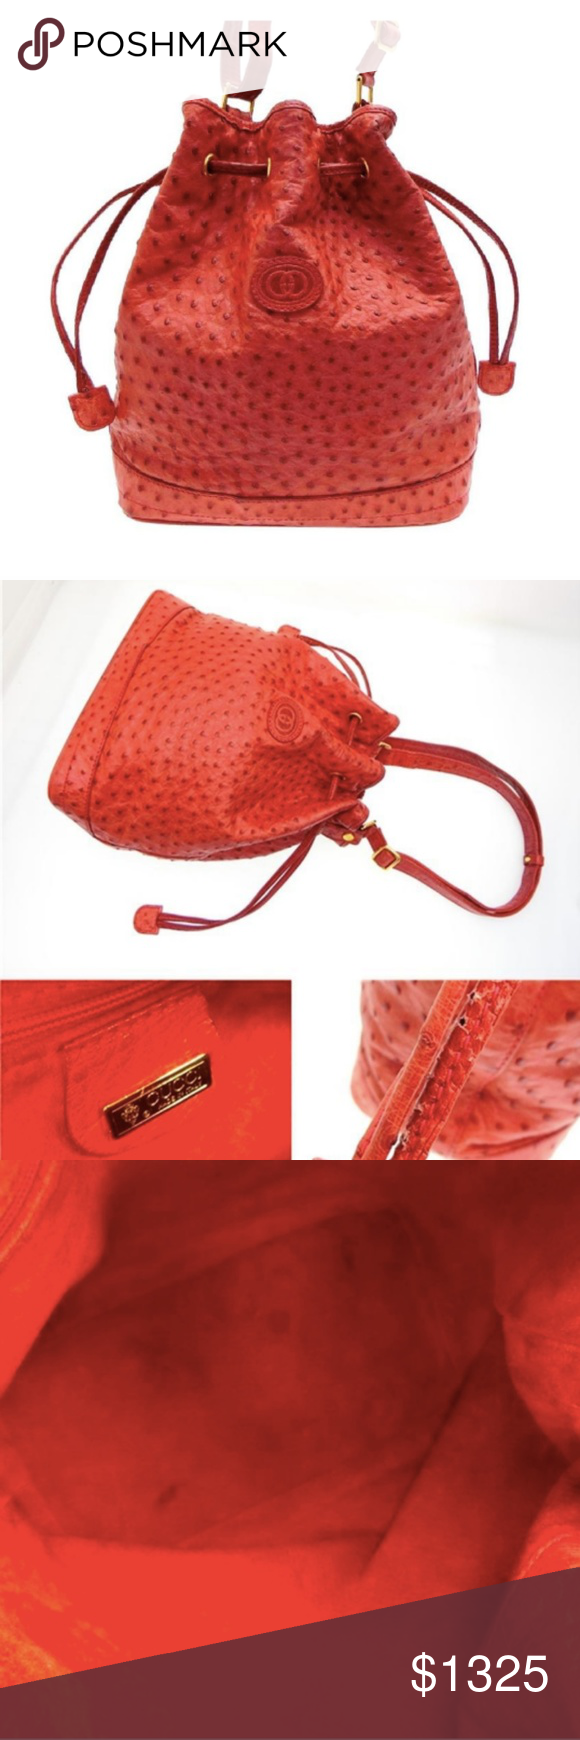 1230f7b420f5 Gucci Ostrich Drawstring Bucket Hobo Date Code/Serial Number: 001 261 0792  Made In